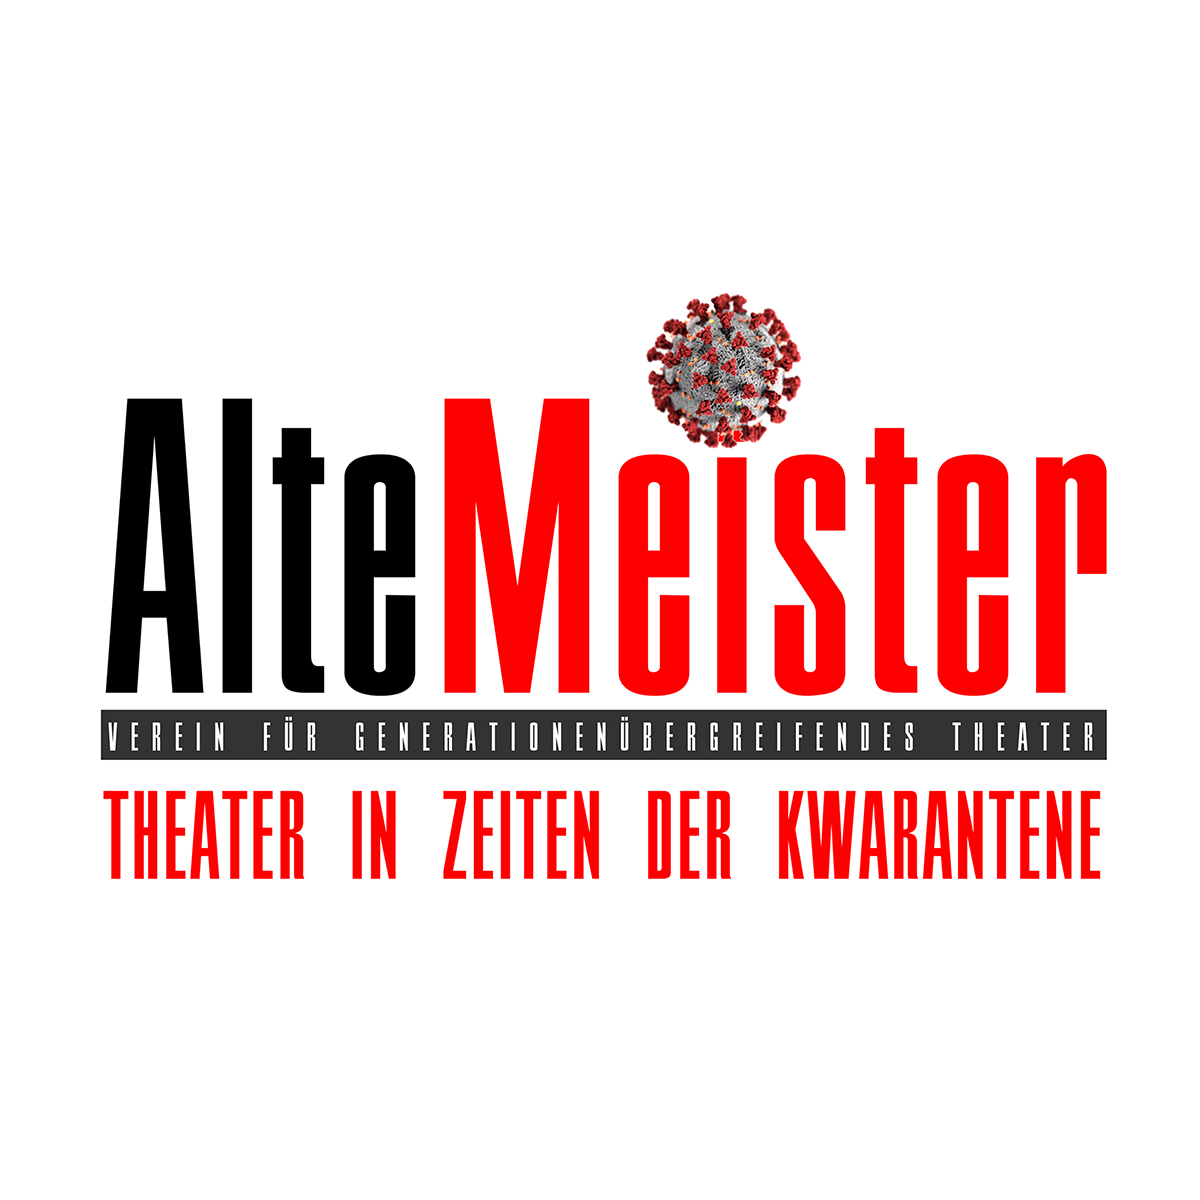 THEATER IN ZEITEN DER KWARANTENE